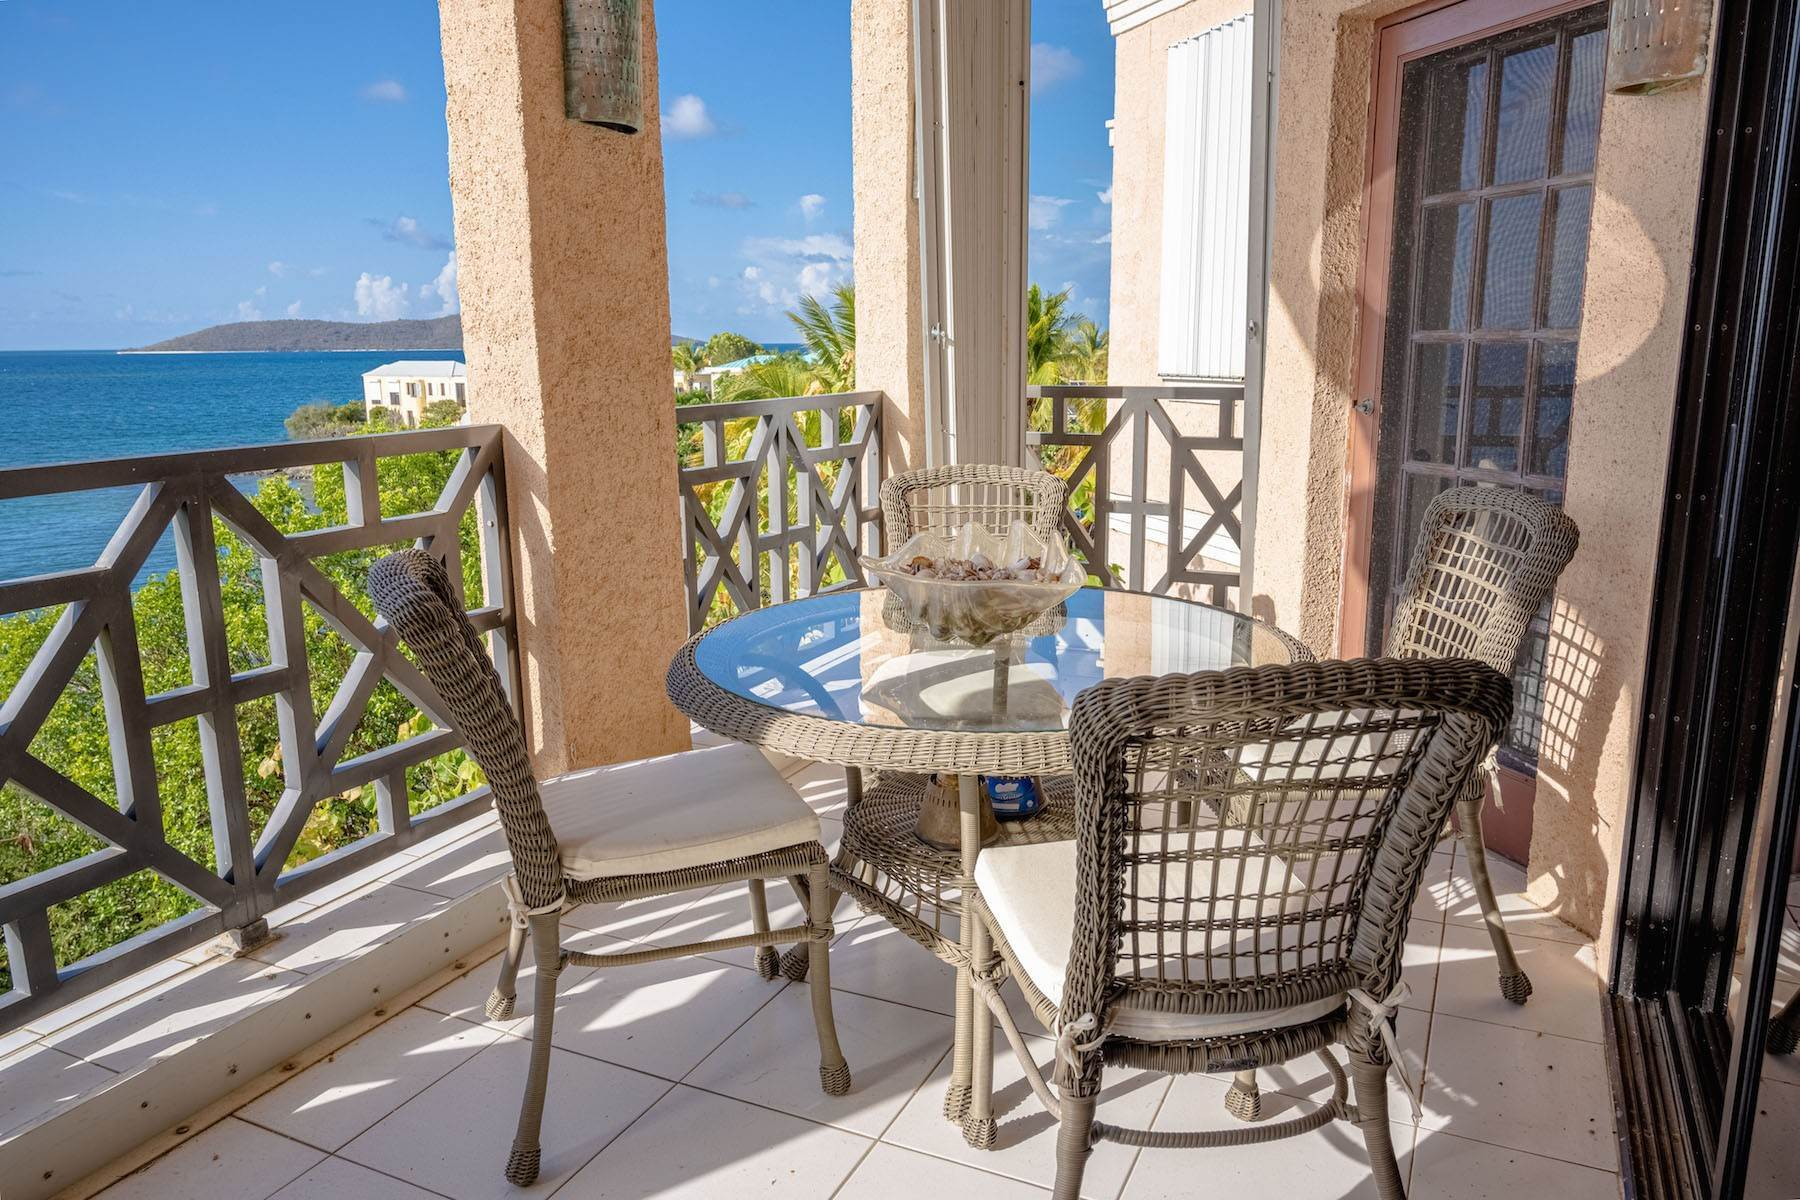 Condominiums for Sale at 514 Carden Beach St Croix, Virgin Islands 00820 United States Virgin Islands